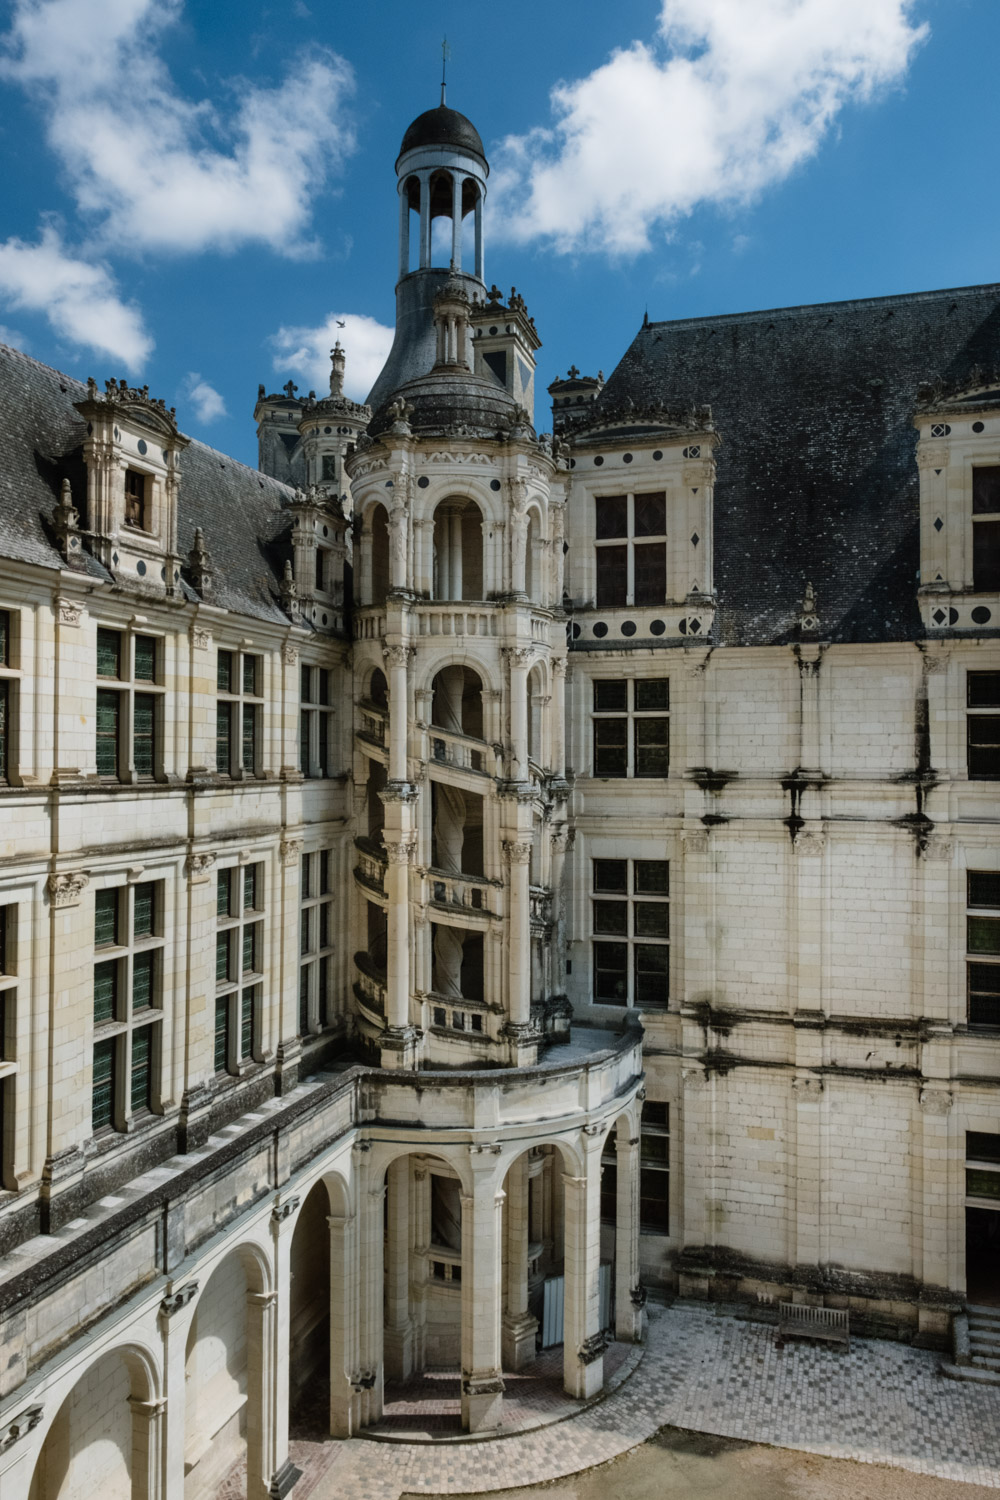 """Exterior staircase in the Château de Chambord - Travel photography and guide by © Natasha Lequepeys for """"And Then I Met Yoko"""". #loirevalley #france #travelguide #travelphotography #valdeloire"""